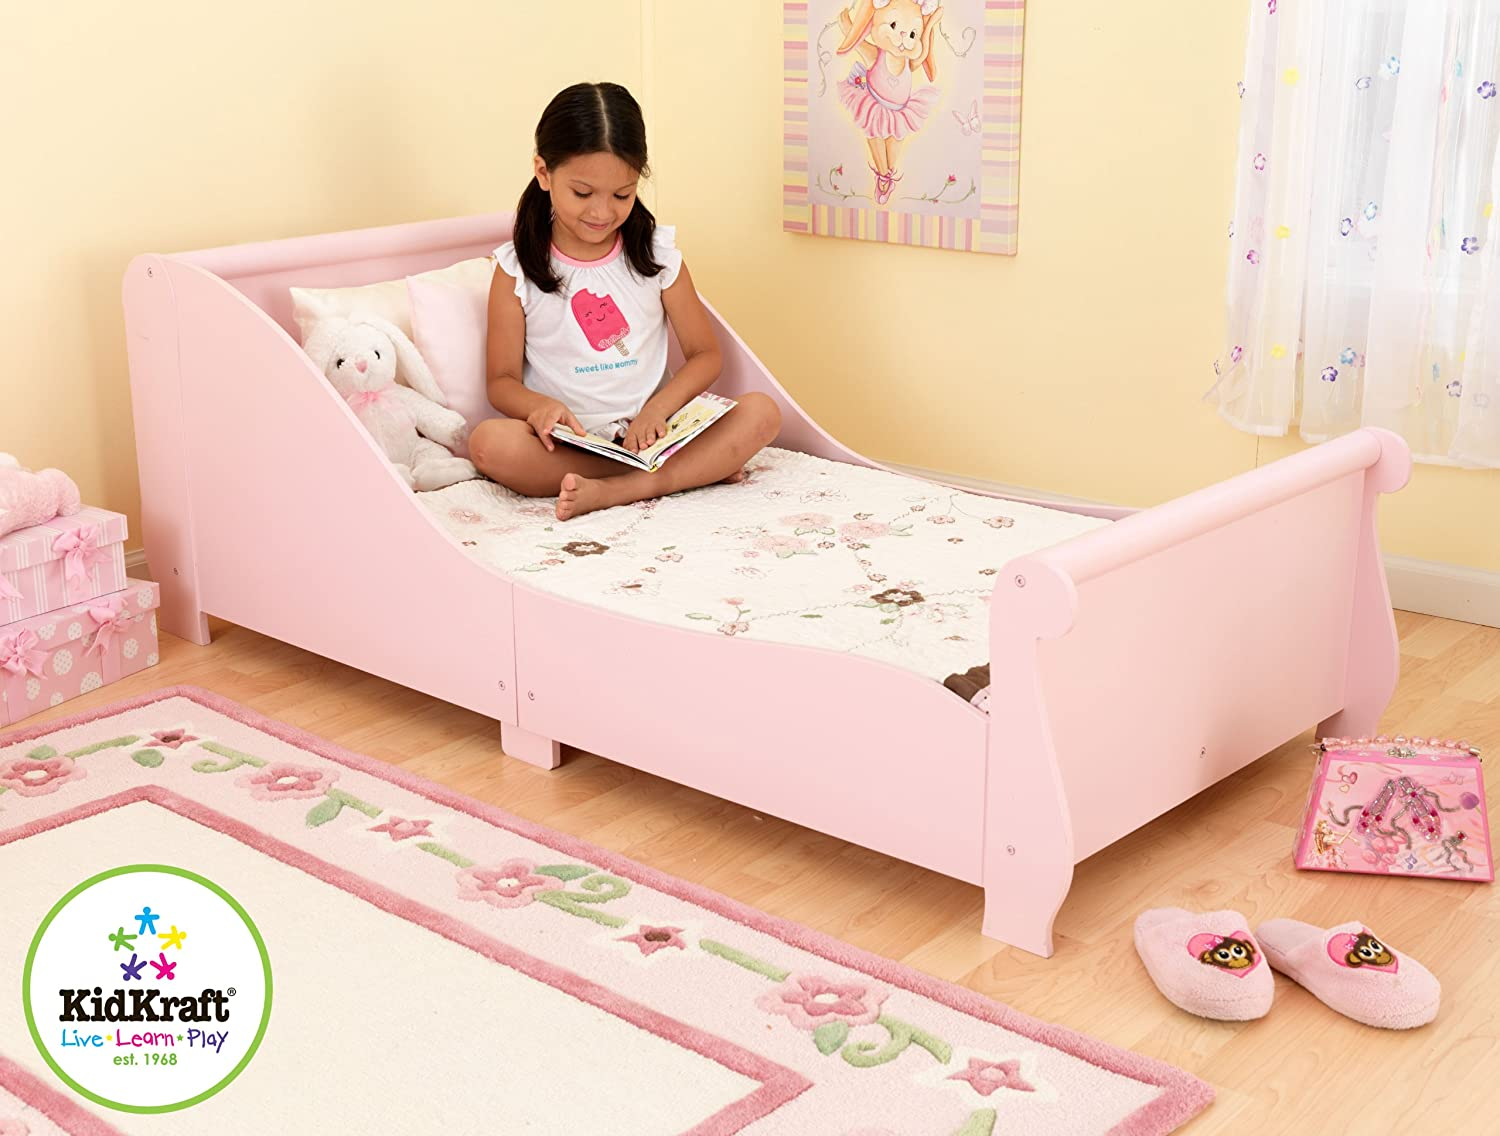 Kidkraft Sleigh Toddler Bed 86735 Furniture Pink Amazoncouk Kitchen Home